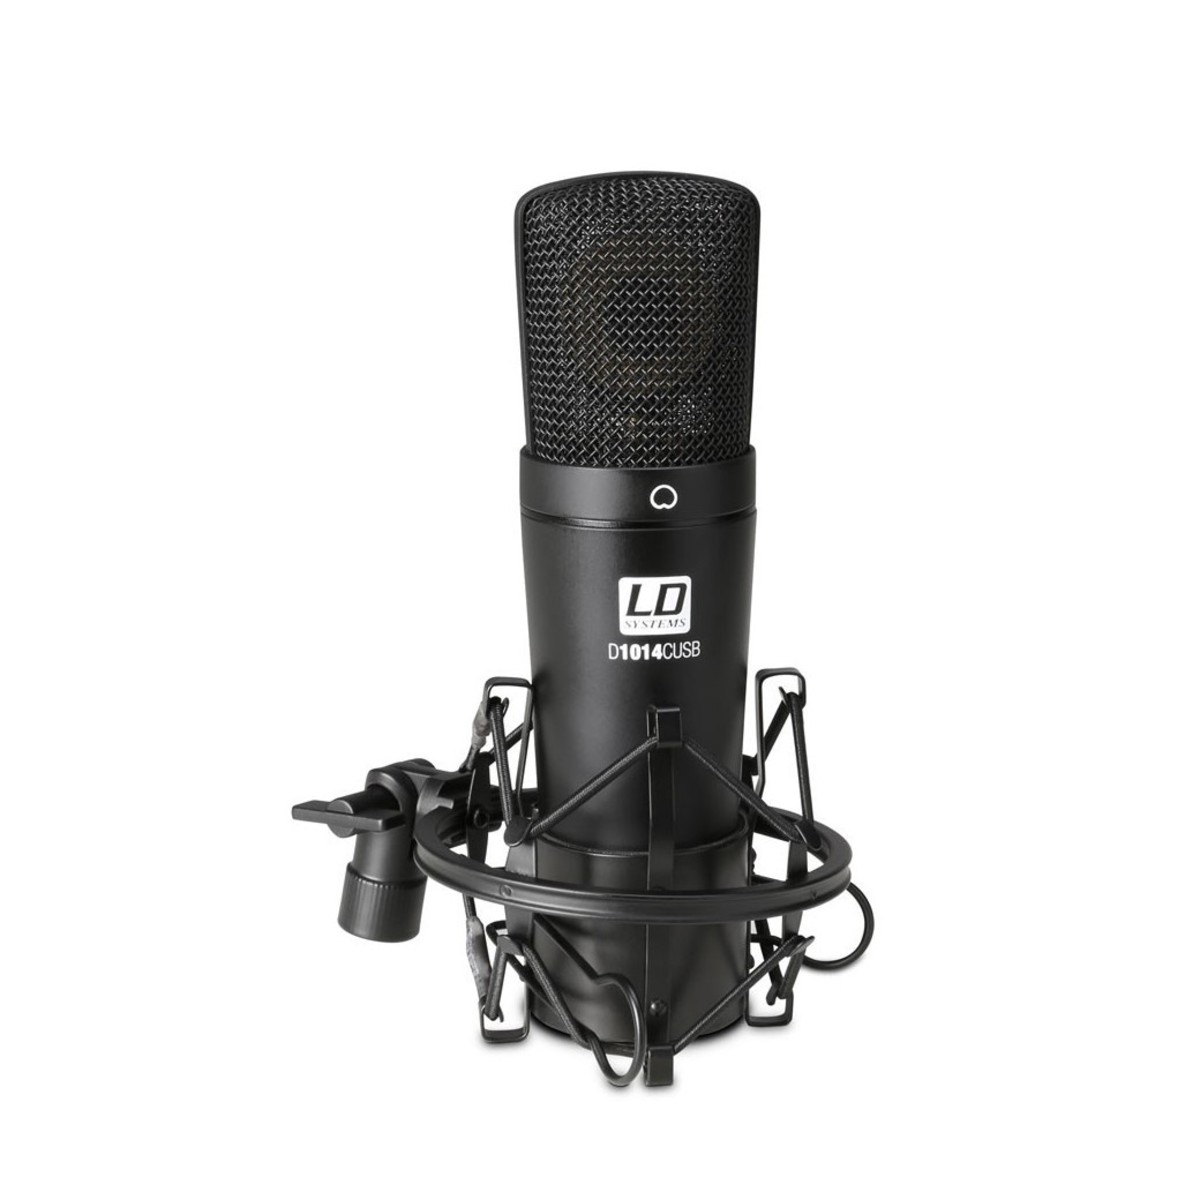 ld systems d1014c usb condenser microphone at gear4music. Black Bedroom Furniture Sets. Home Design Ideas